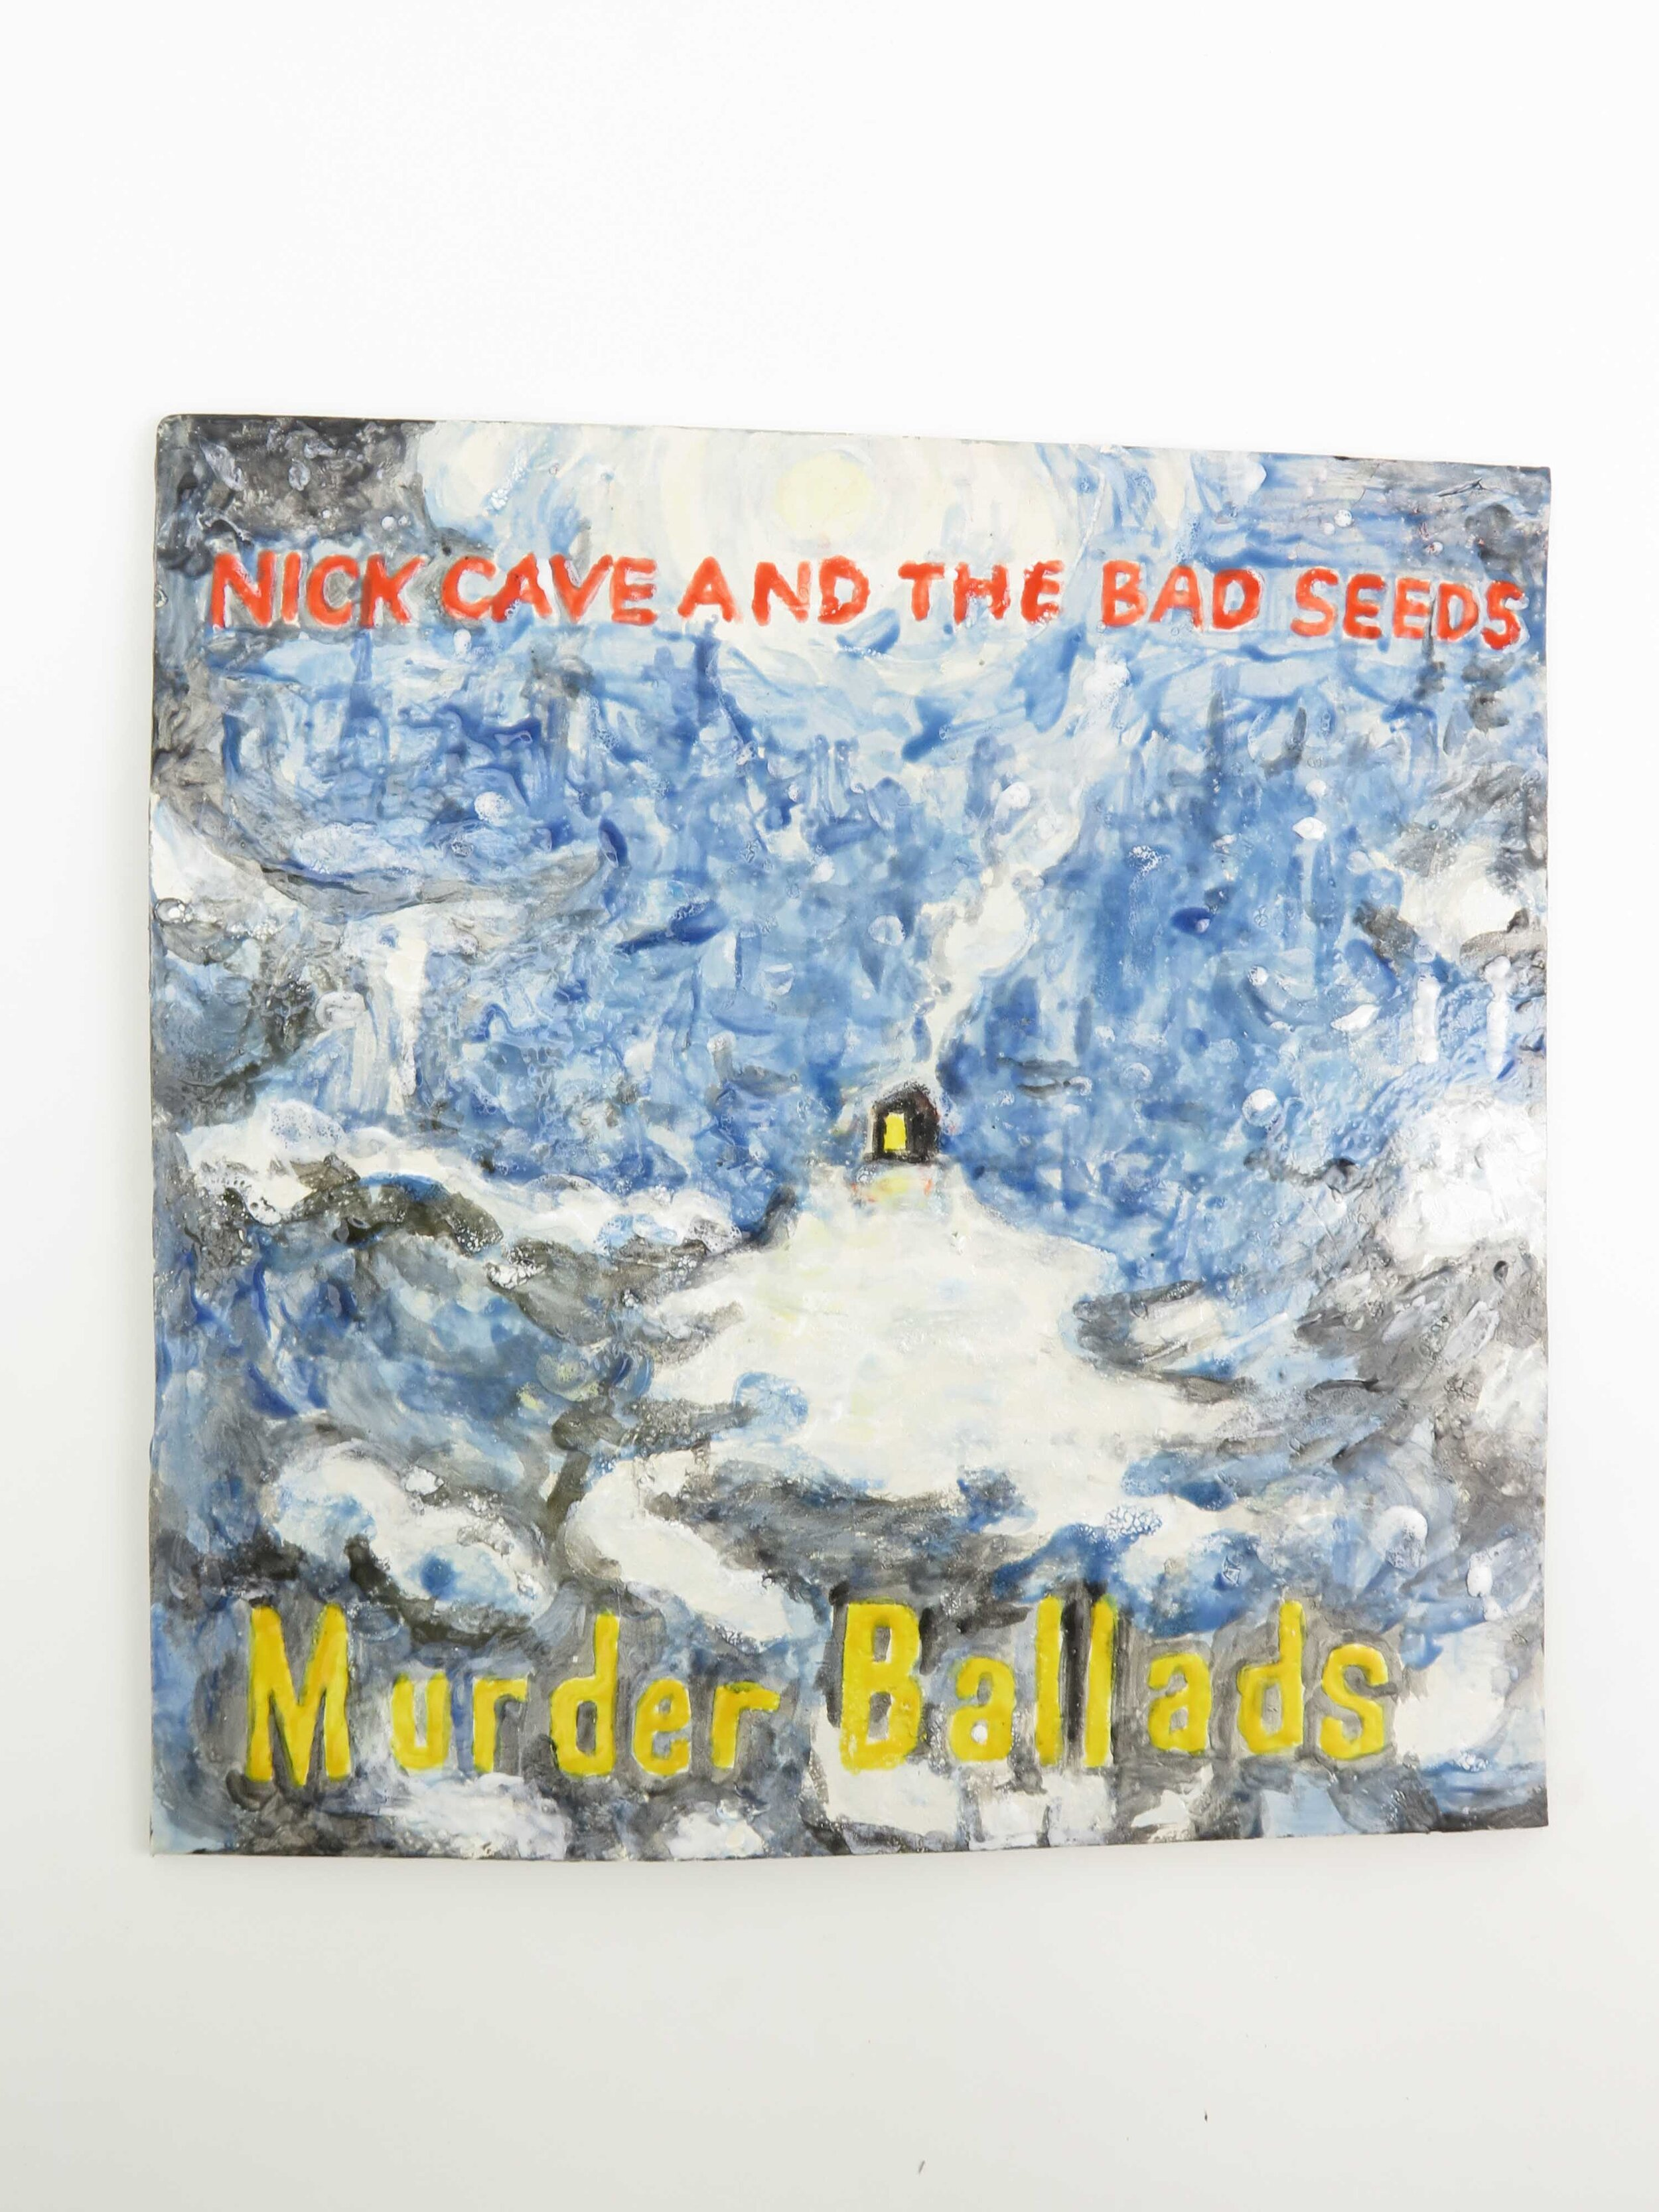 Nick Cave and the Bad Seeds_ Murder Ballads_2019, glazed paper clay, 29 x 29x 0,5 cm.jpg